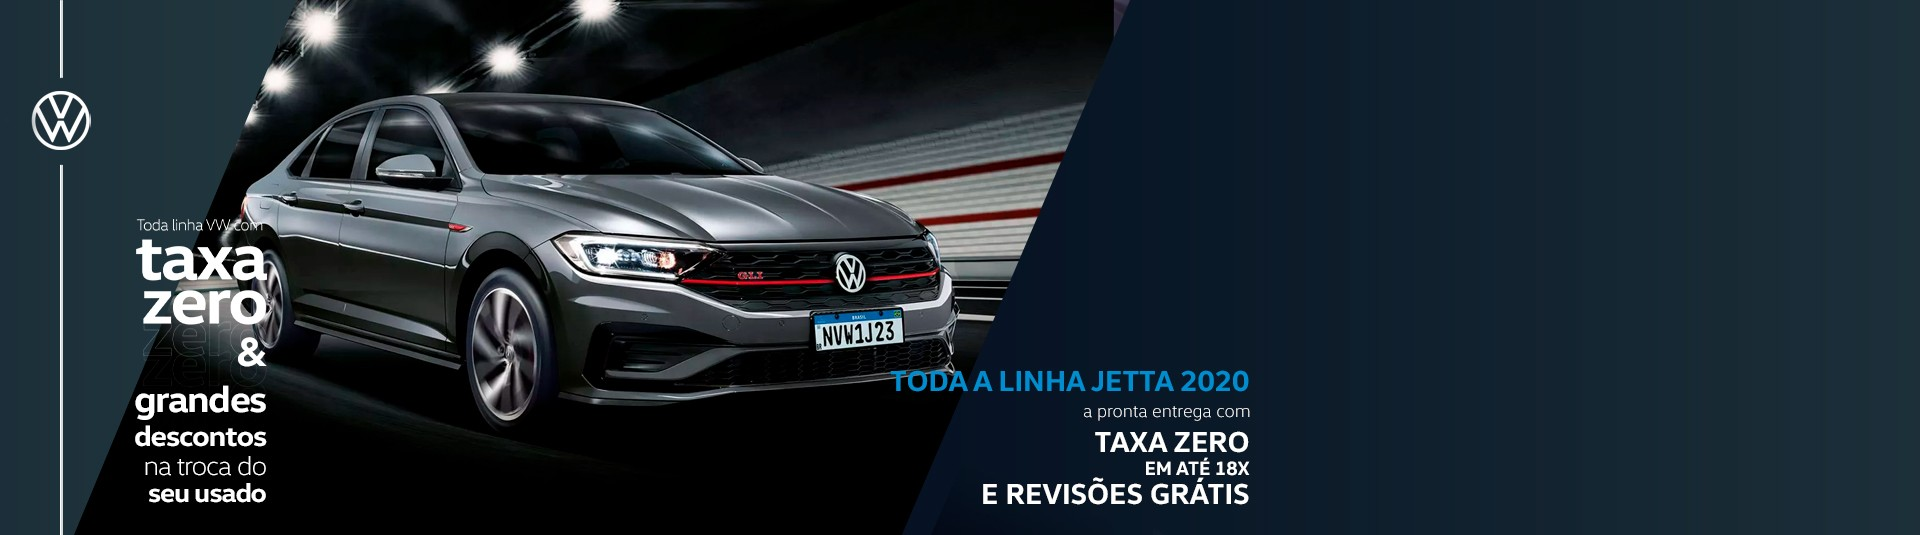 orvel-vw-jetta